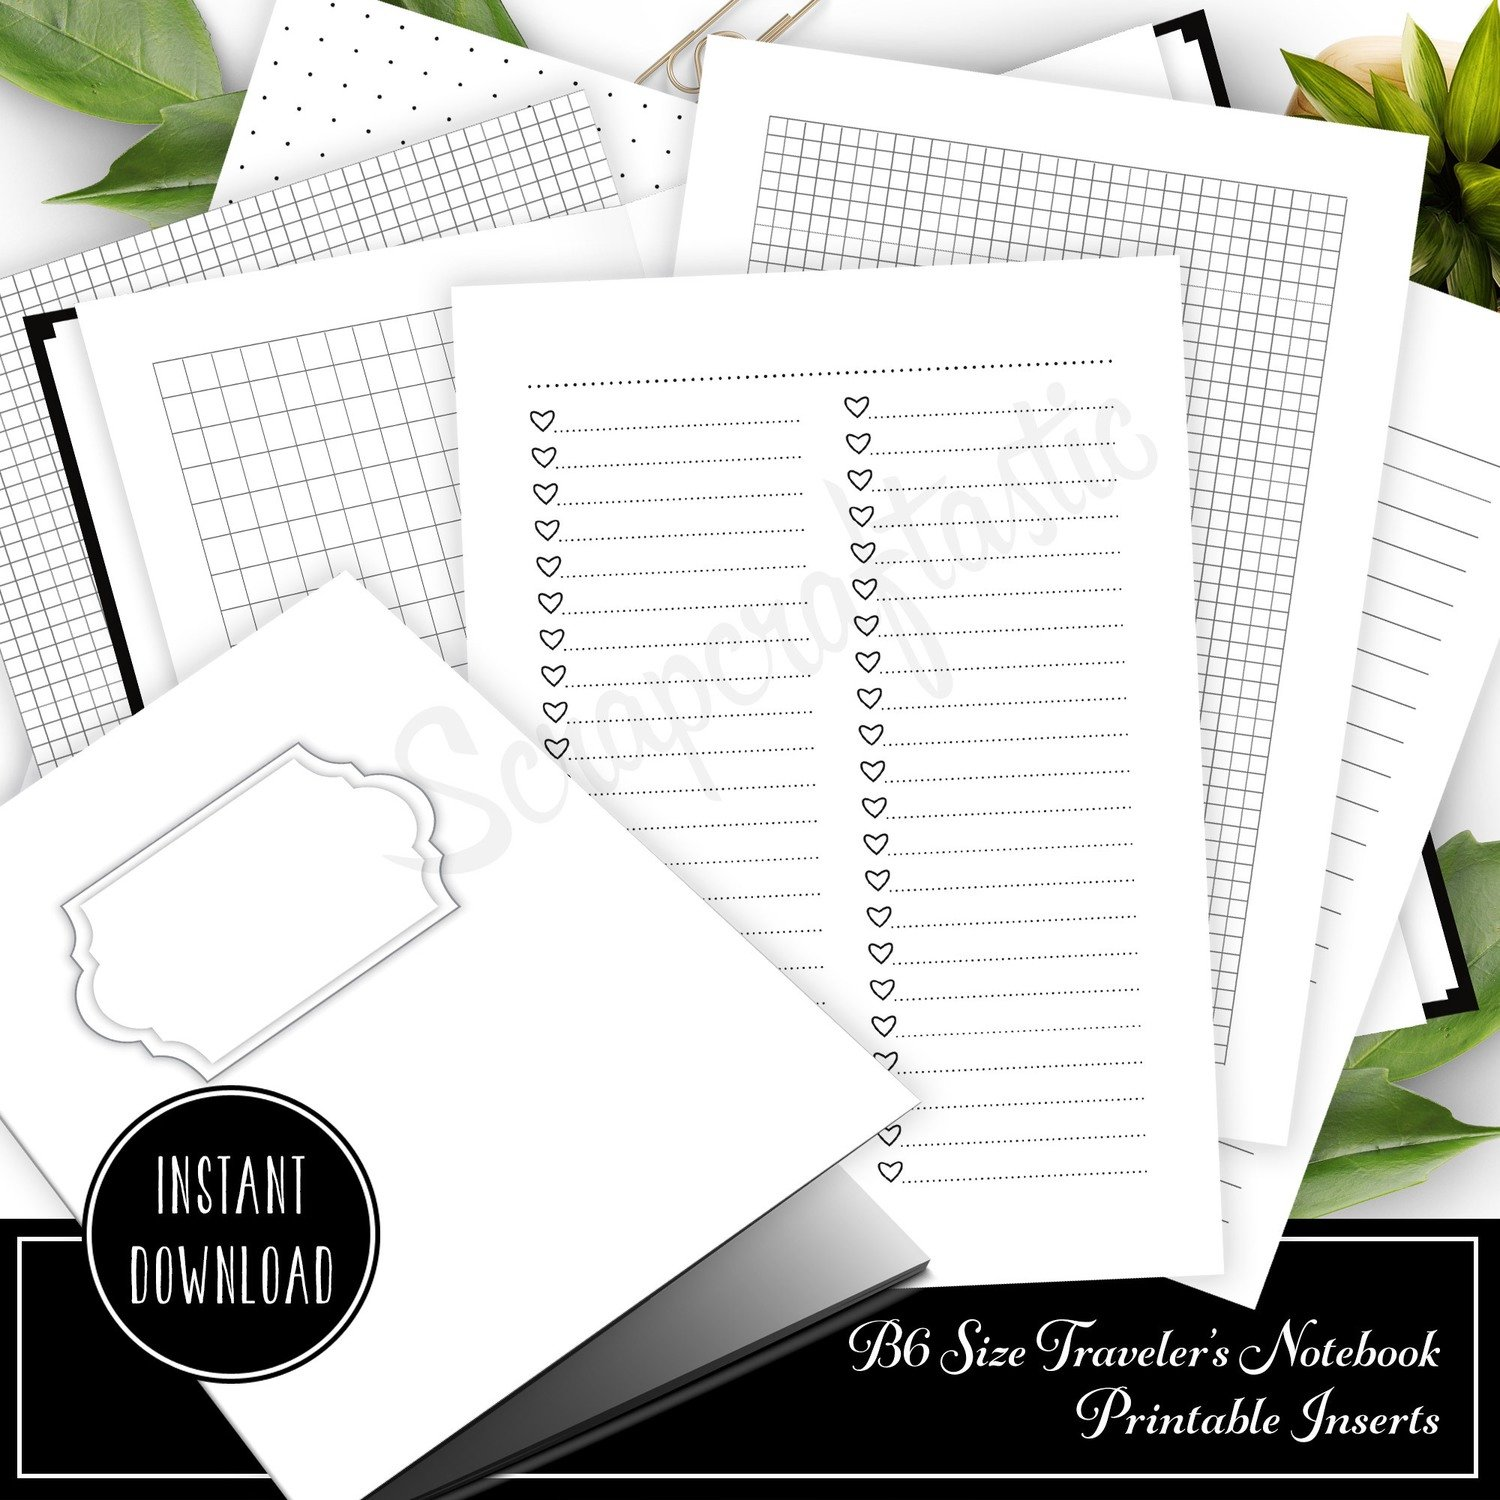 image about Printable Notebook Covers called The Essentials B6 Visitors Laptop computer Printable Inserts - Deal with, Checklists, Grids, Dot Grids, Included and Blank Inserts